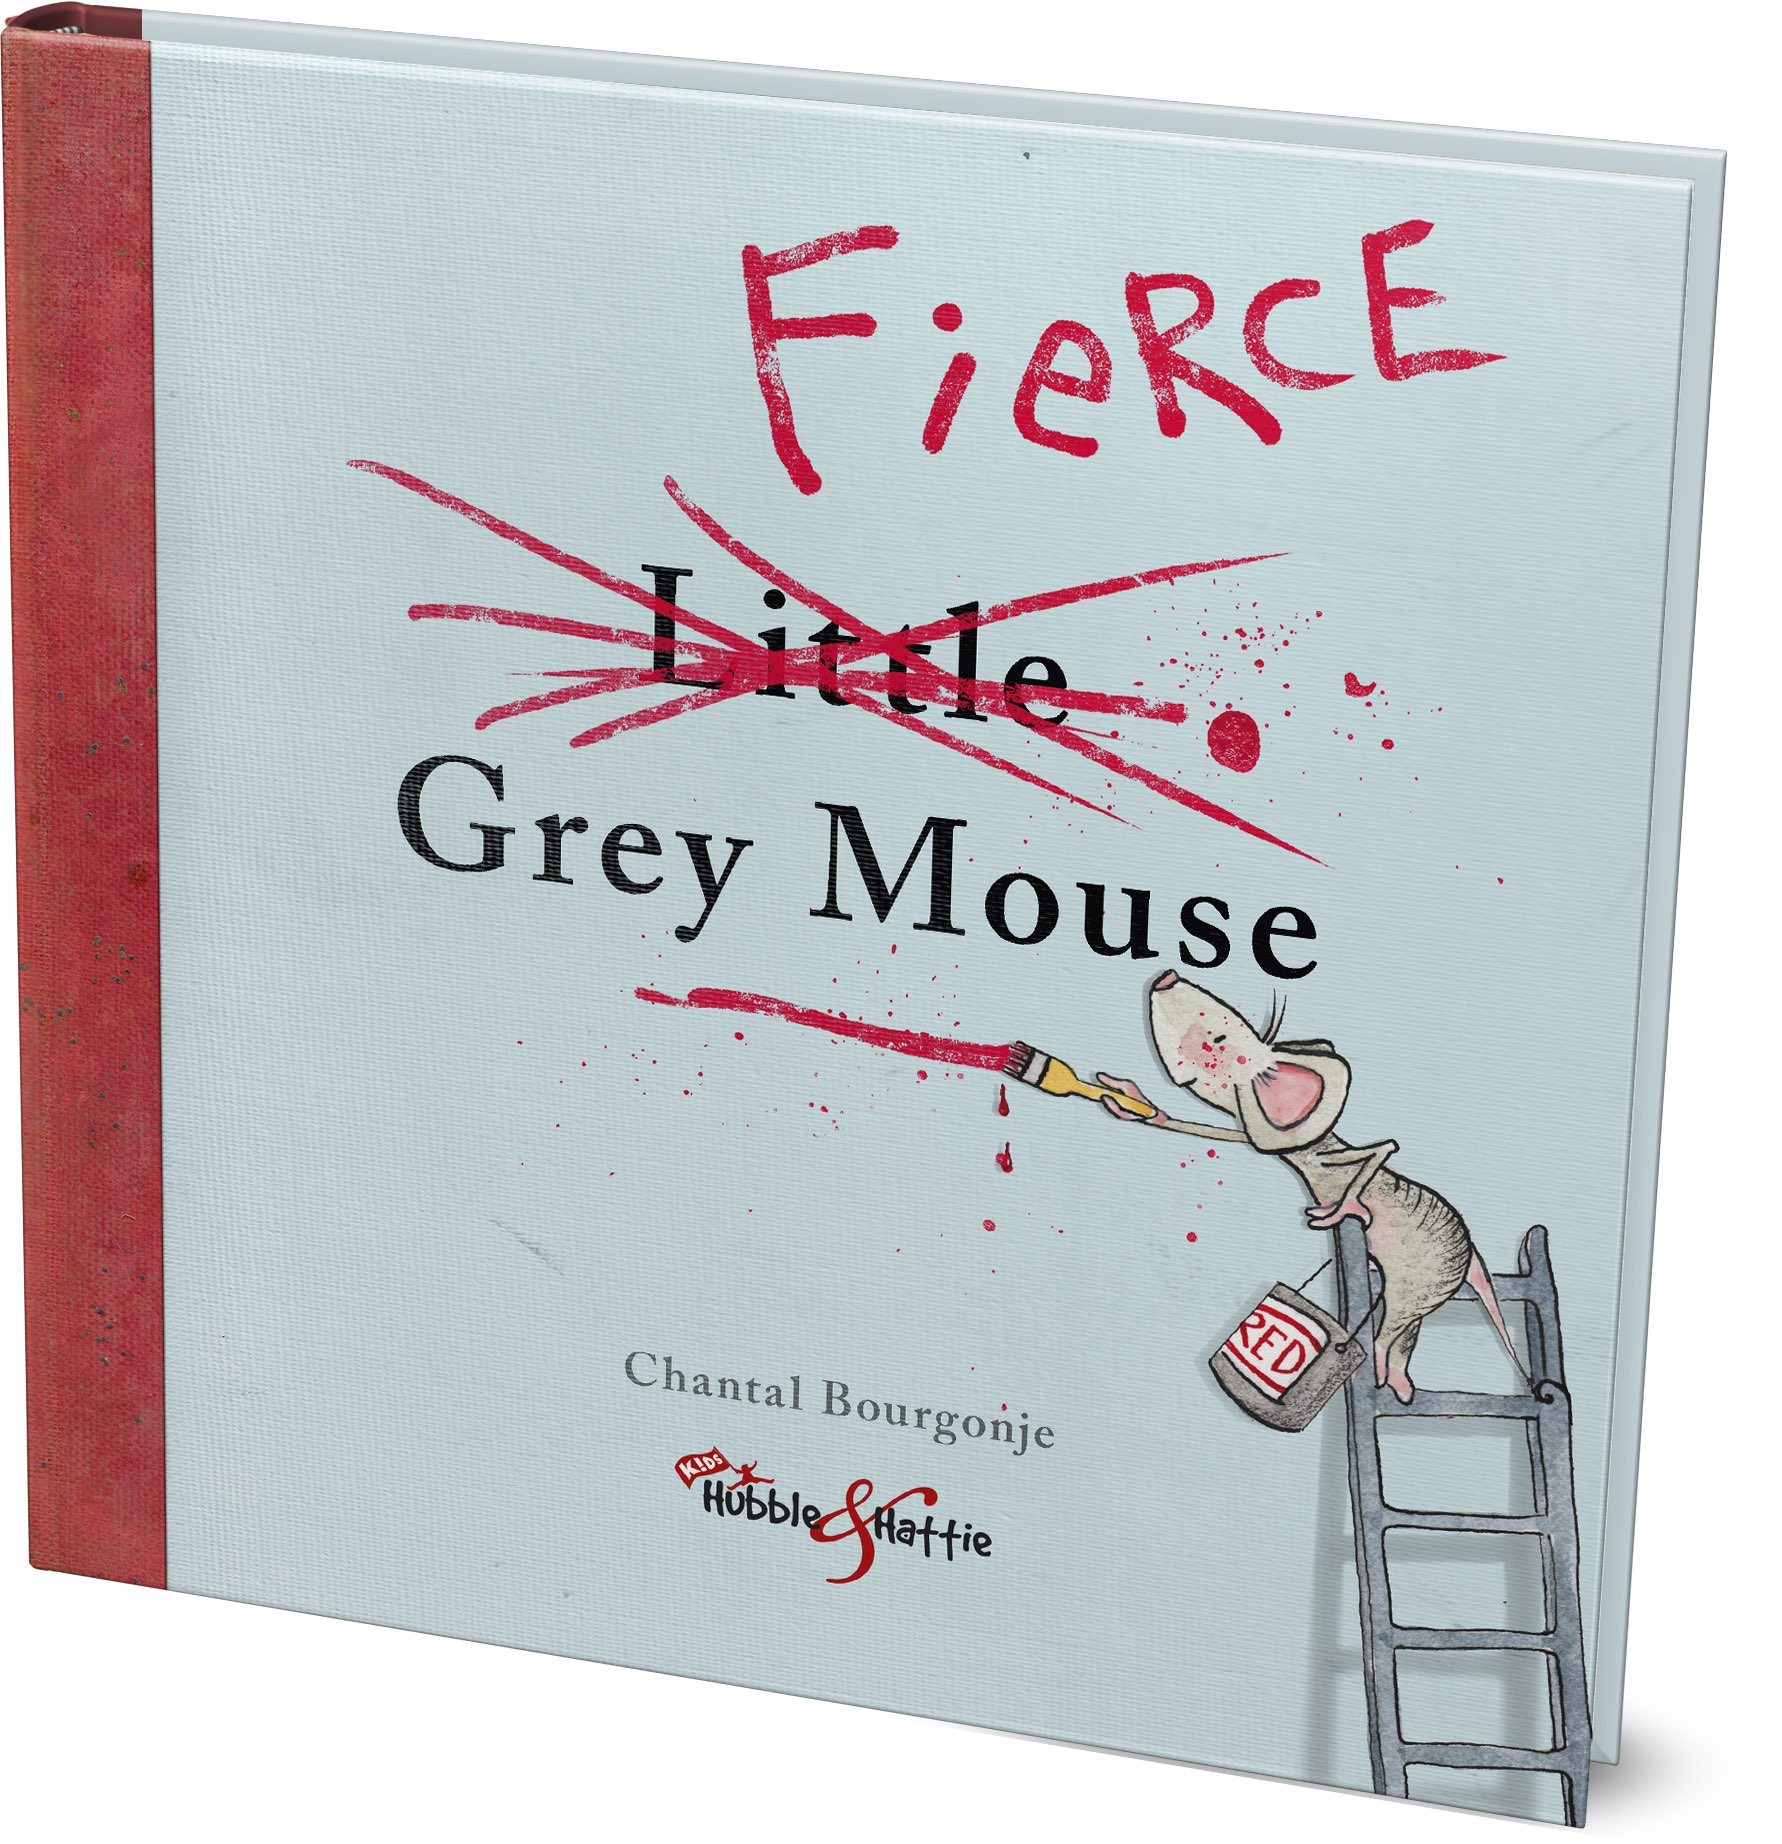 Who's afraid of the big fierce mouse ...? In a world full of happy, fluffy animals, ONE Mouse wants to be FIERCE. But what happens when his friends want to play with Little Grey Mouse and find only Fierce Grey Mouse ...?